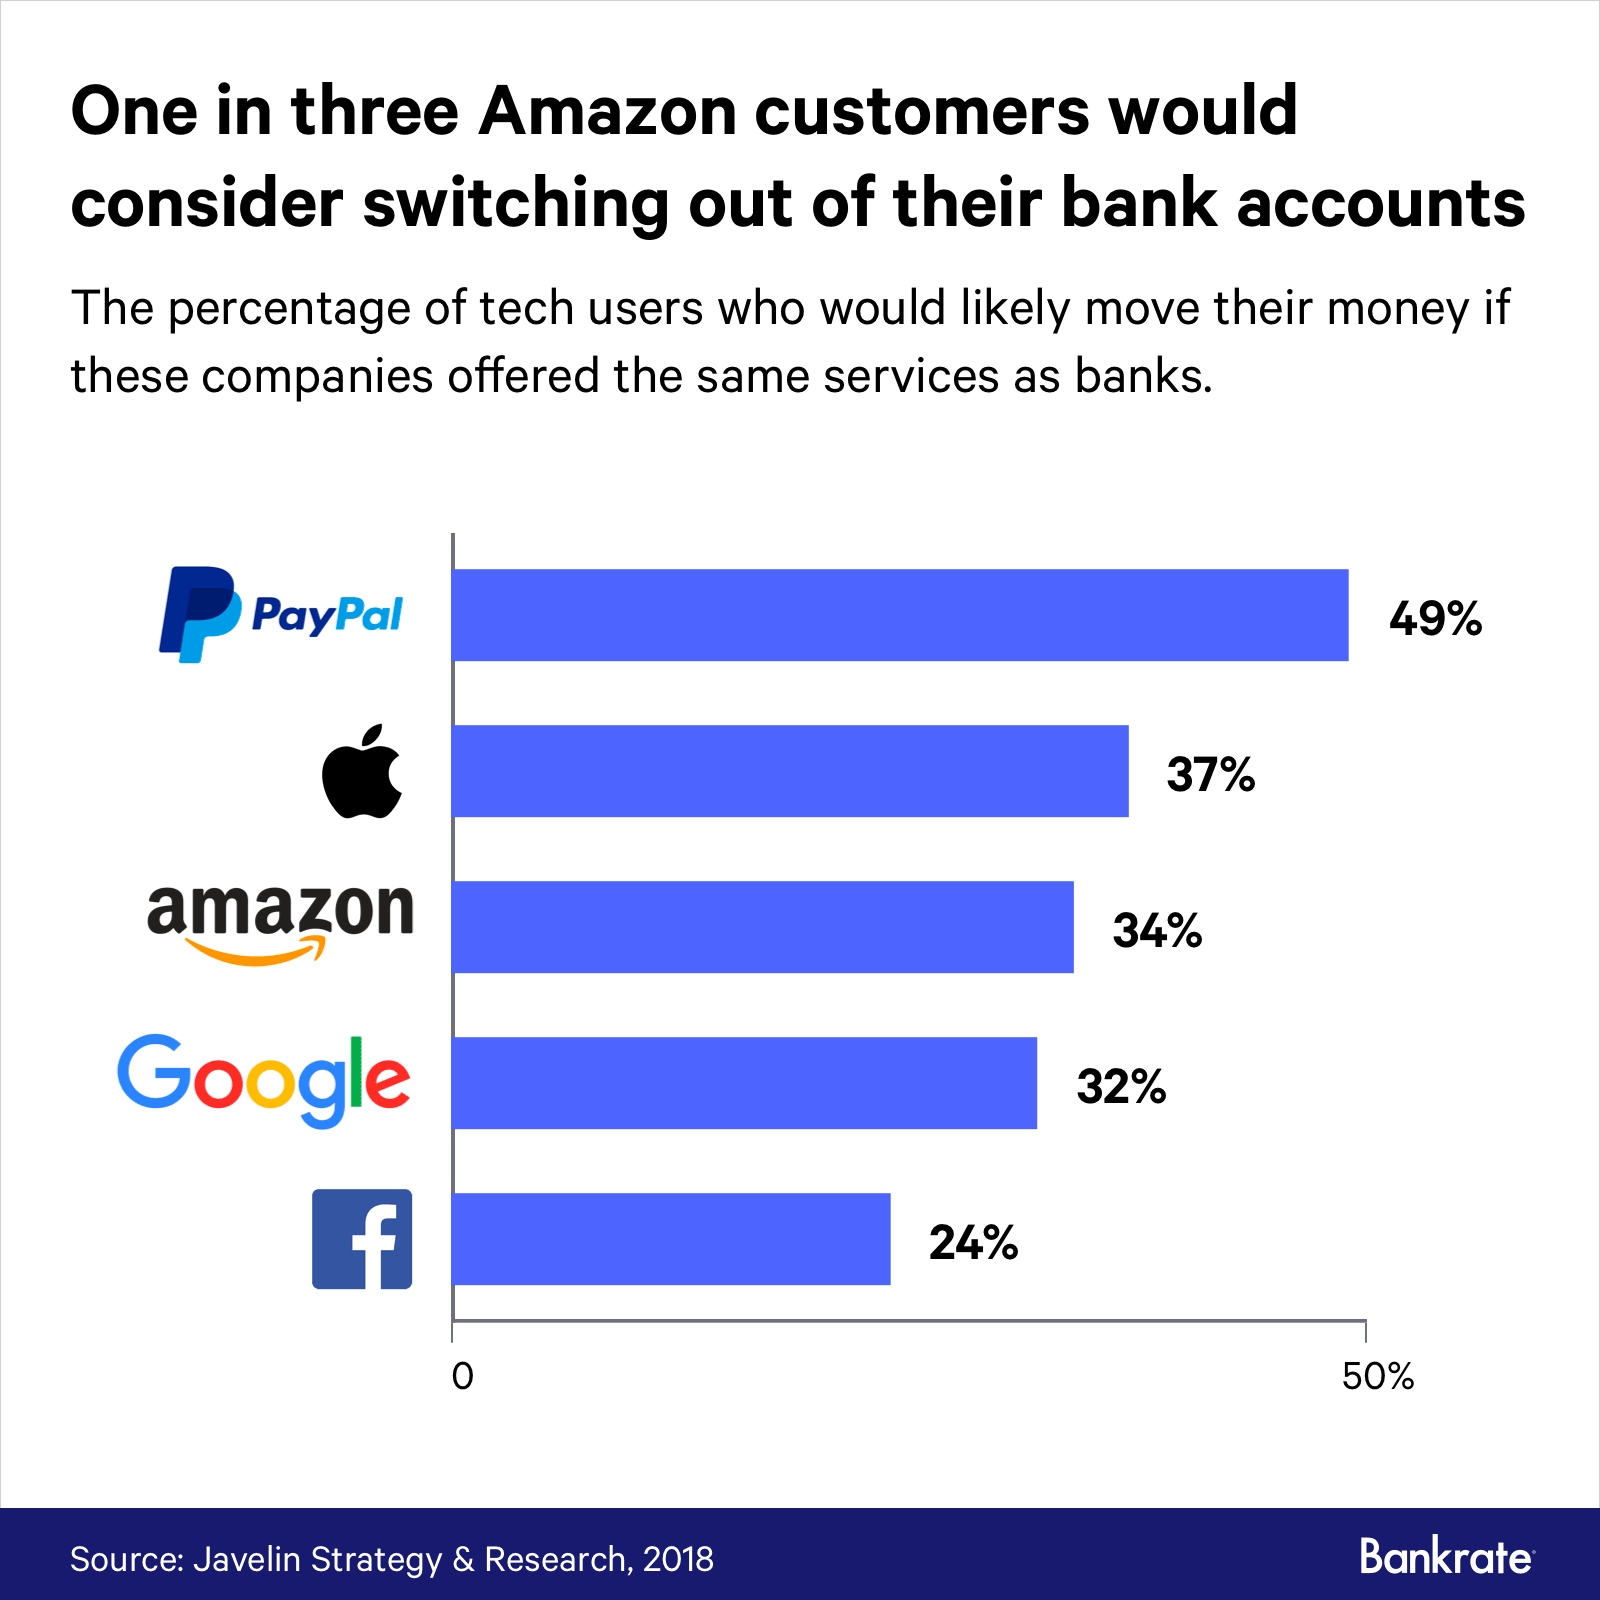 Graph: The percentage of tech users who would likely move their money if these companies offered the same services as banks.